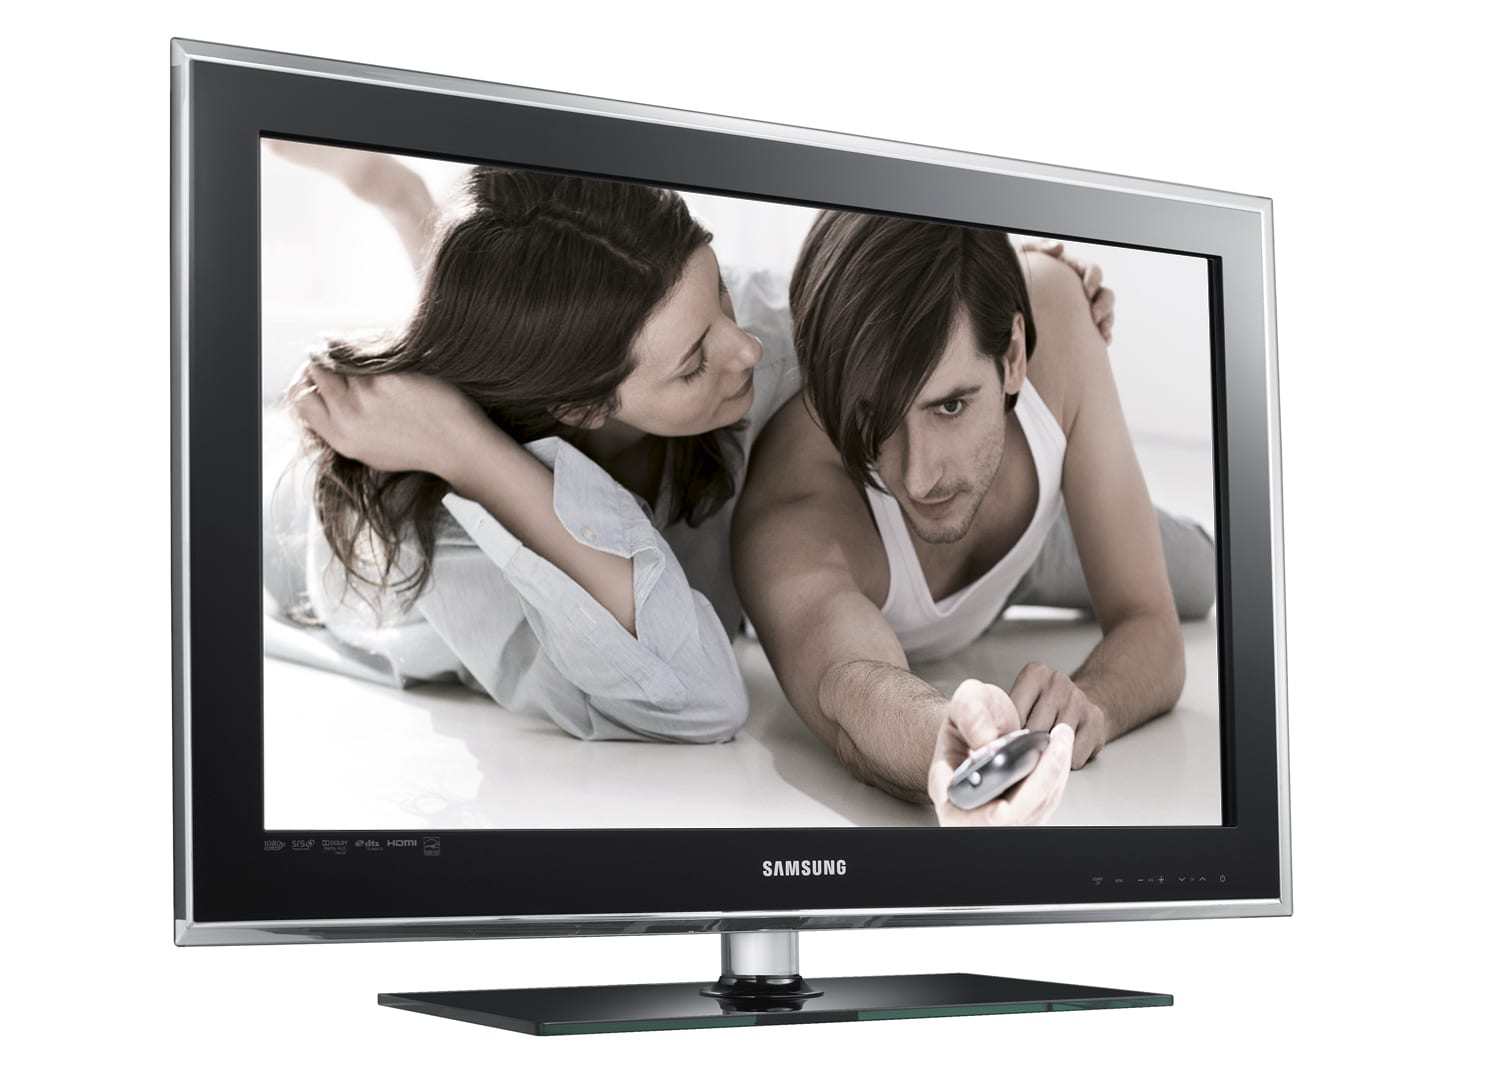 Samsung LE37D550 LCD-Fernseher